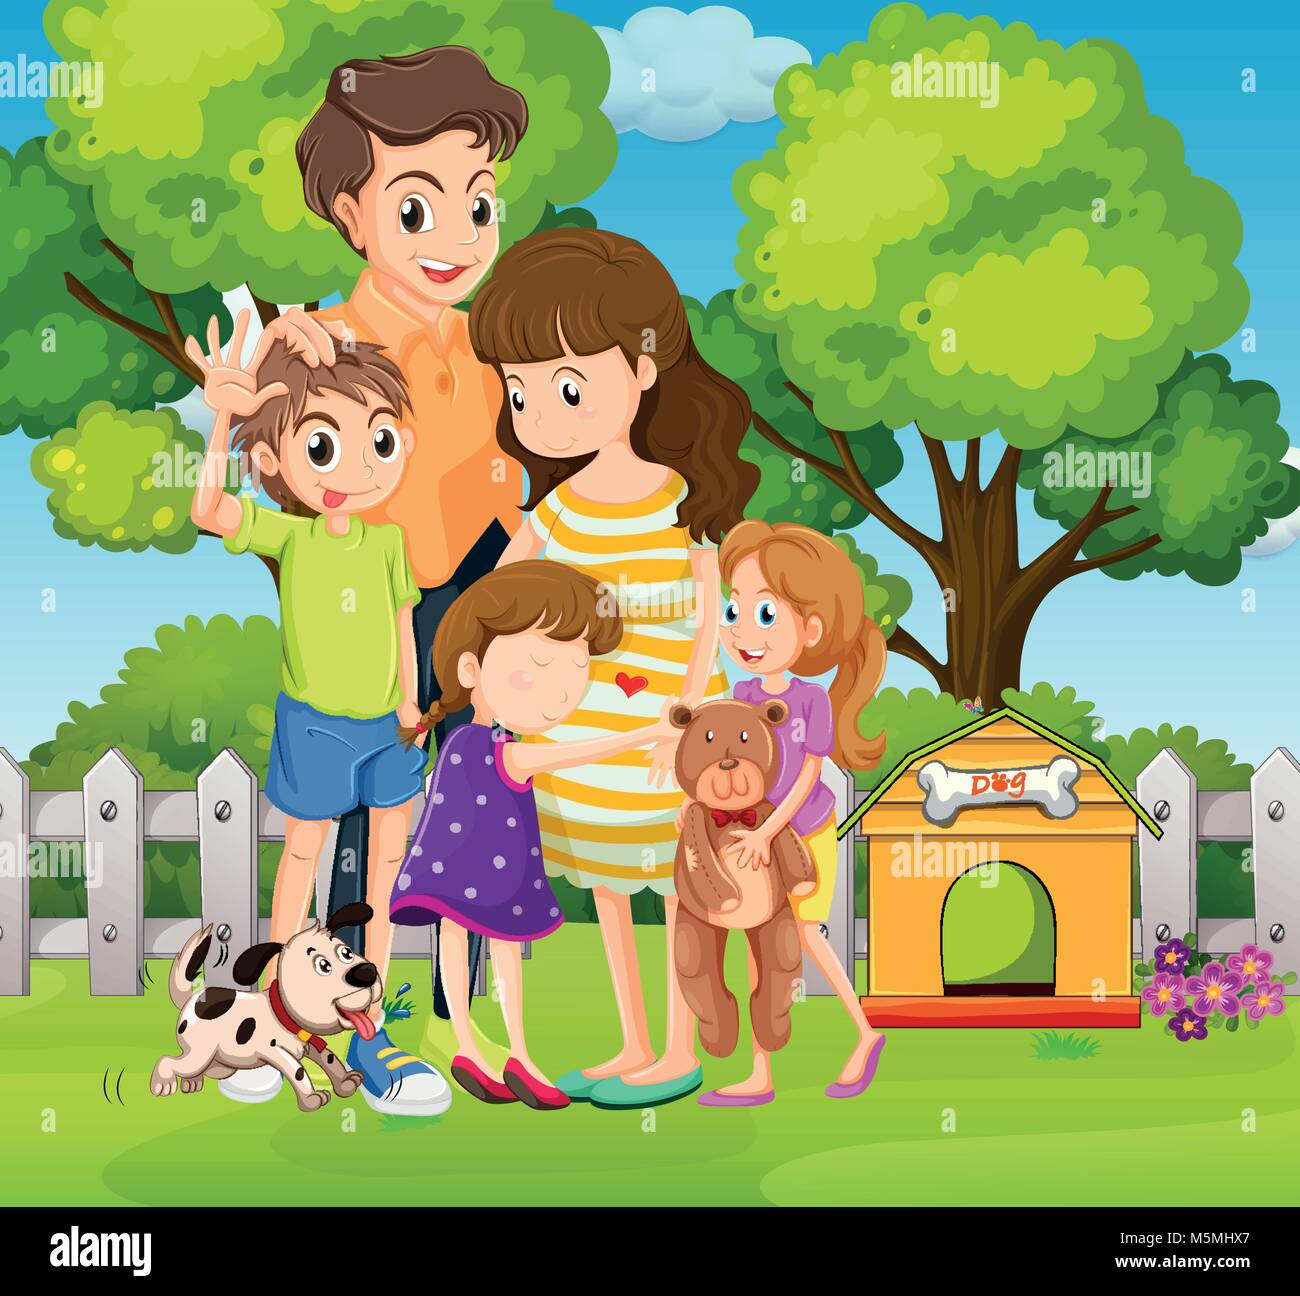 Lovely family with three kids and dog in garden illustration - Stock Vector